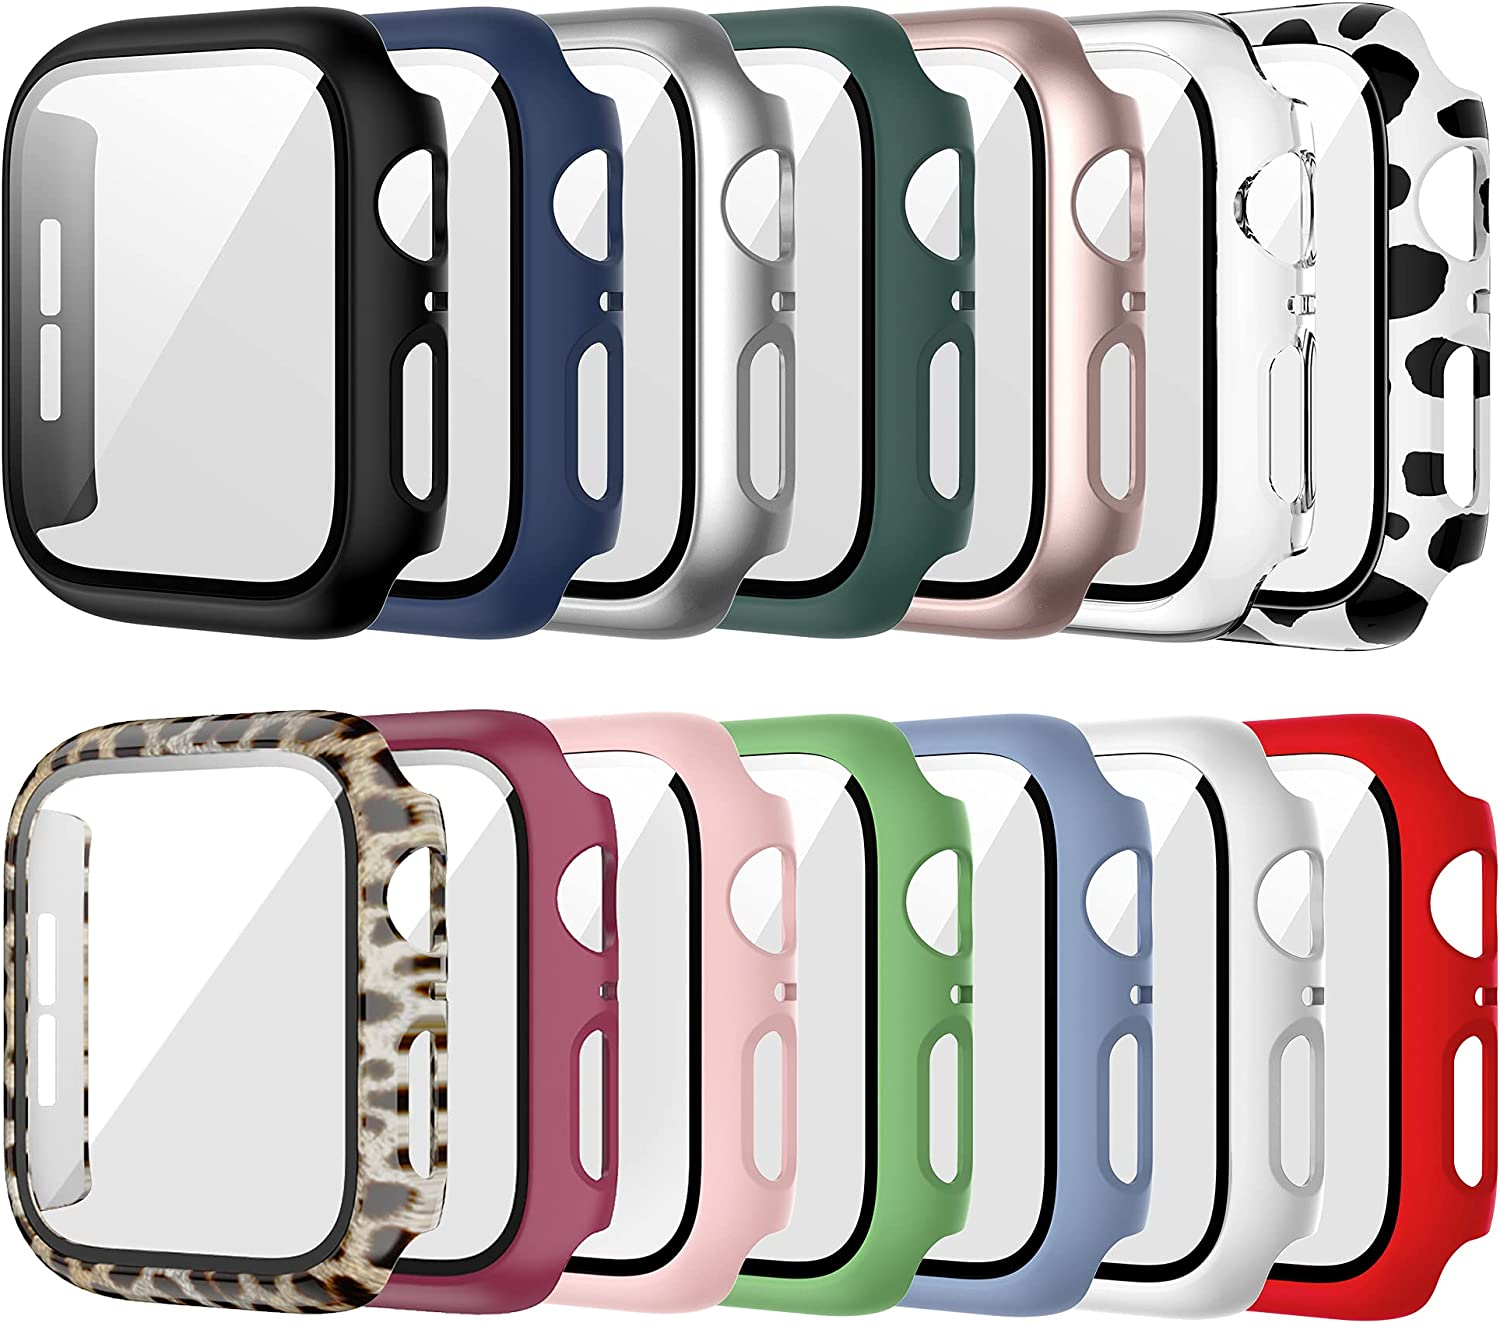 14 Pack Case for Apple Watch 42mm Series 3/2/1 with Tempered Glass Screen Protector, Haojavo Full Hard PC Ultra-Thin Scratch Resistant Bumper HD Protective Cover for iWatch Accessories